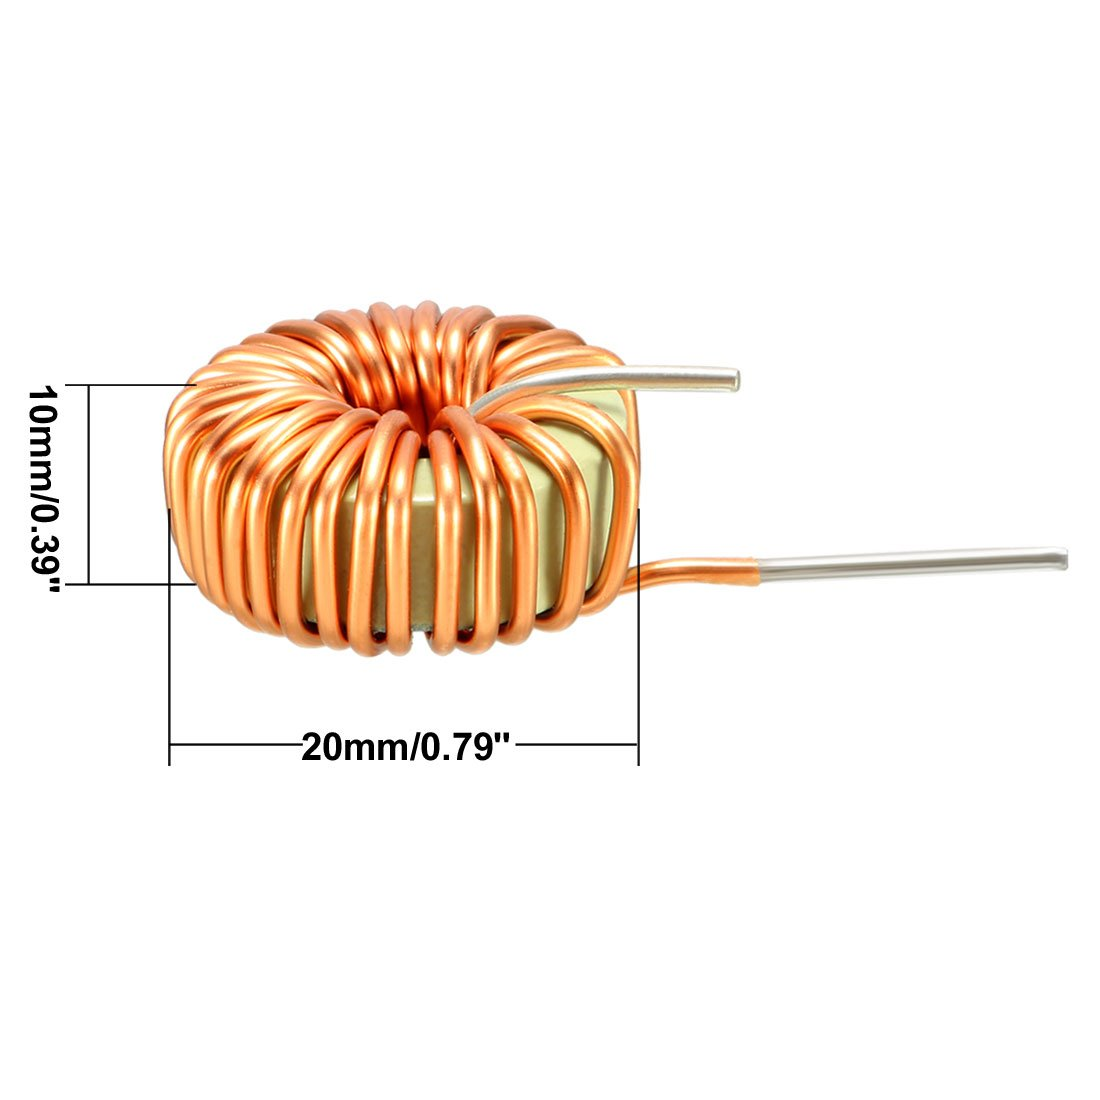 Uxcell 1pcs Horizontal Toroid Magnetic Inductor Monolayer Wire Wind Wiring Diagram Wound 15mh 5a Inductance Coil A18061100ux0017